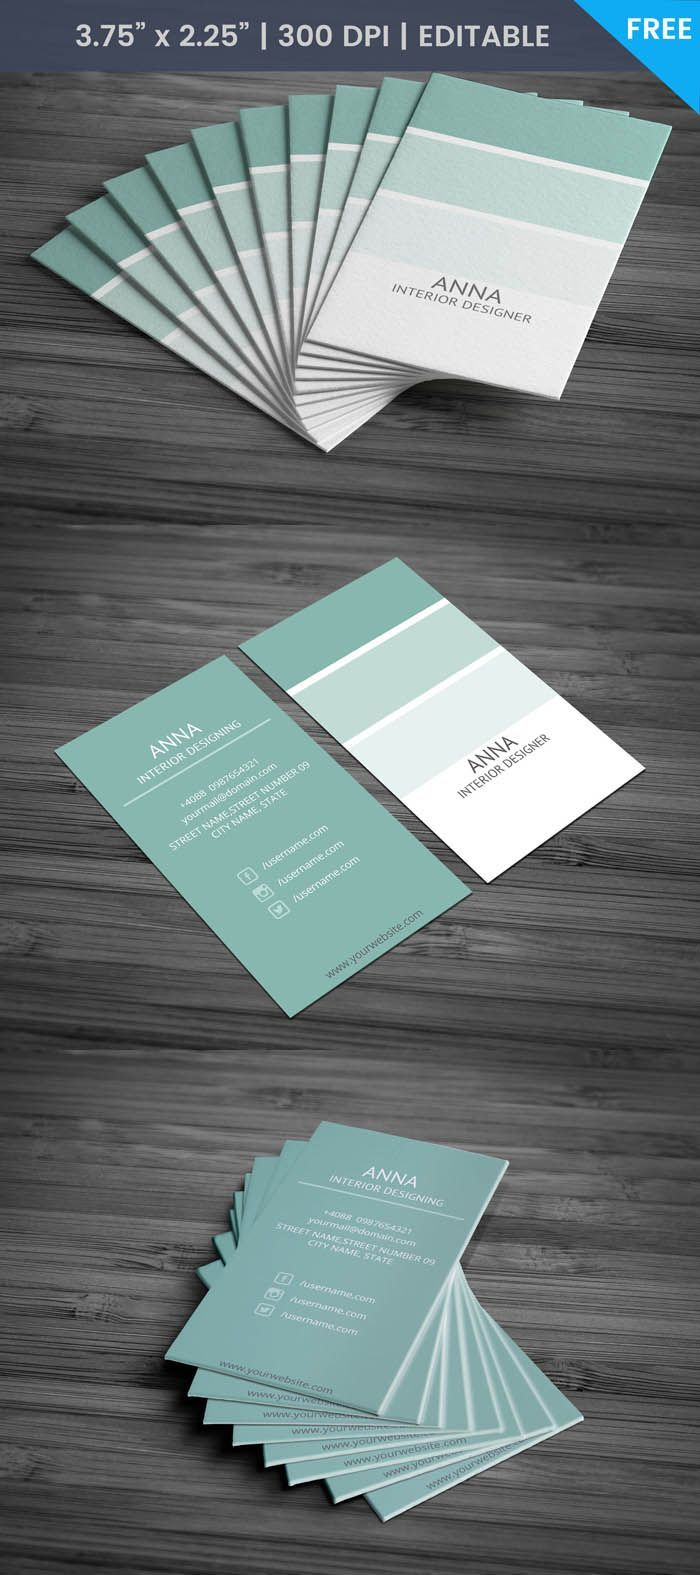 Free interior designer business card template freeinteriordesign also rh pinterest